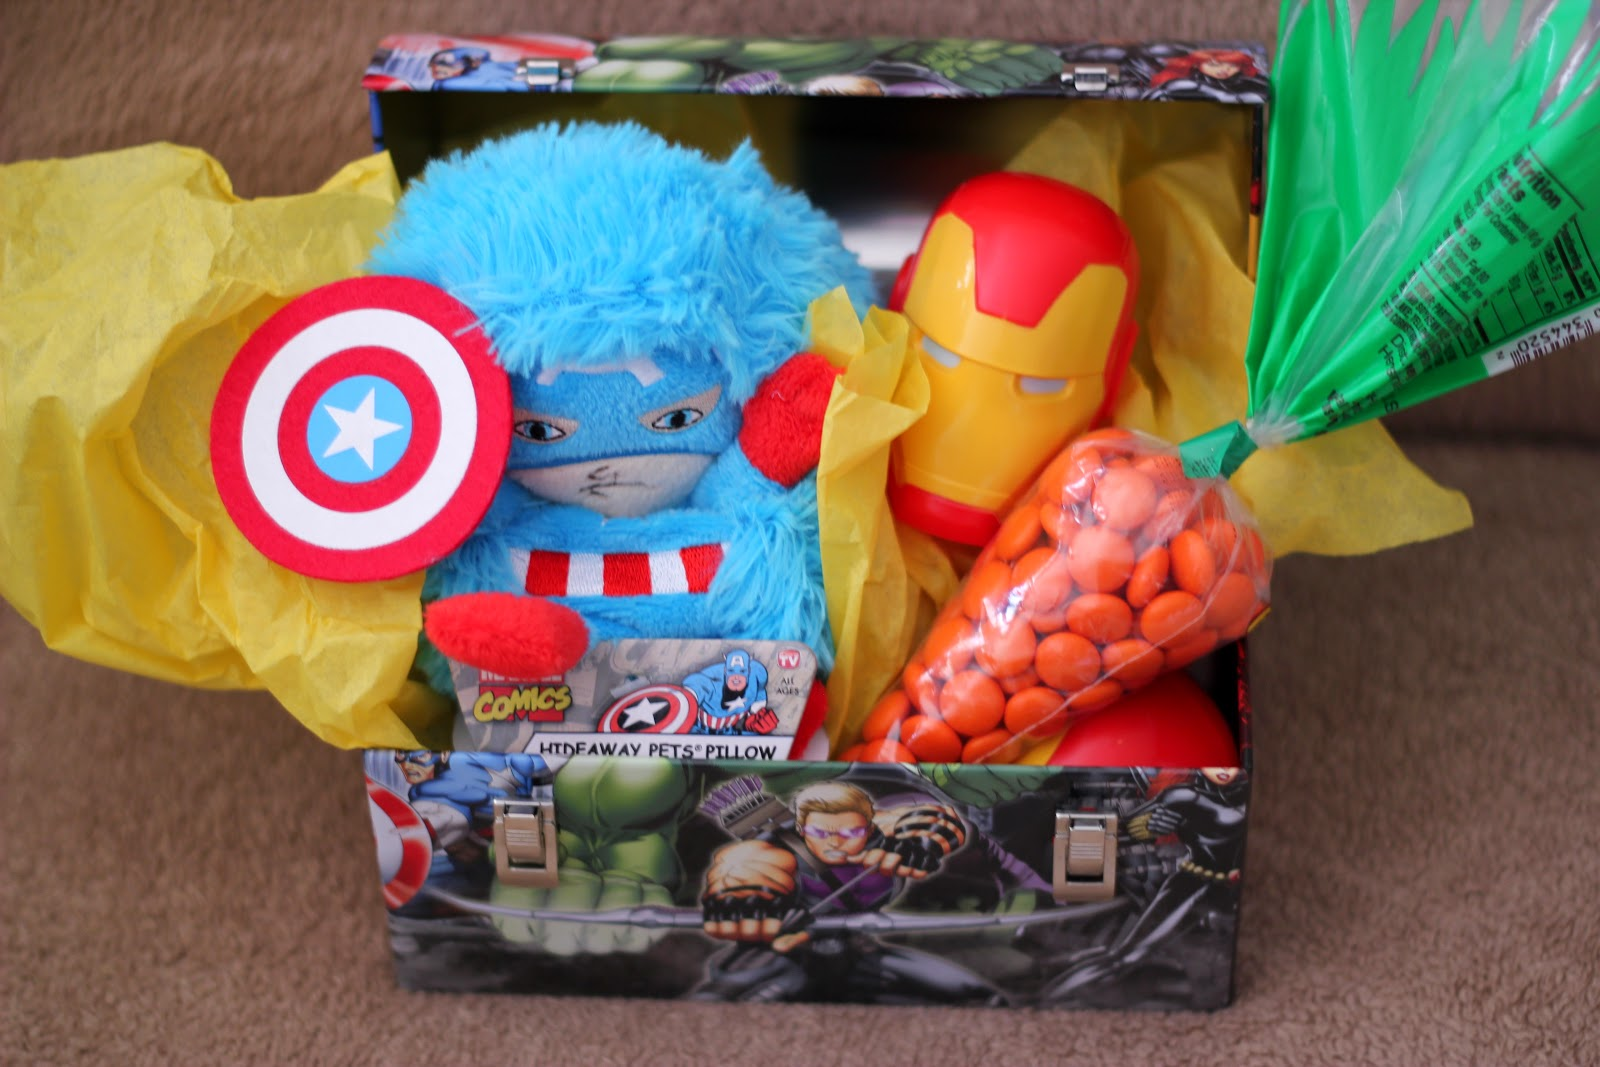 Lille punkin 5 easy character easter basket ideas for under 20 1 negle